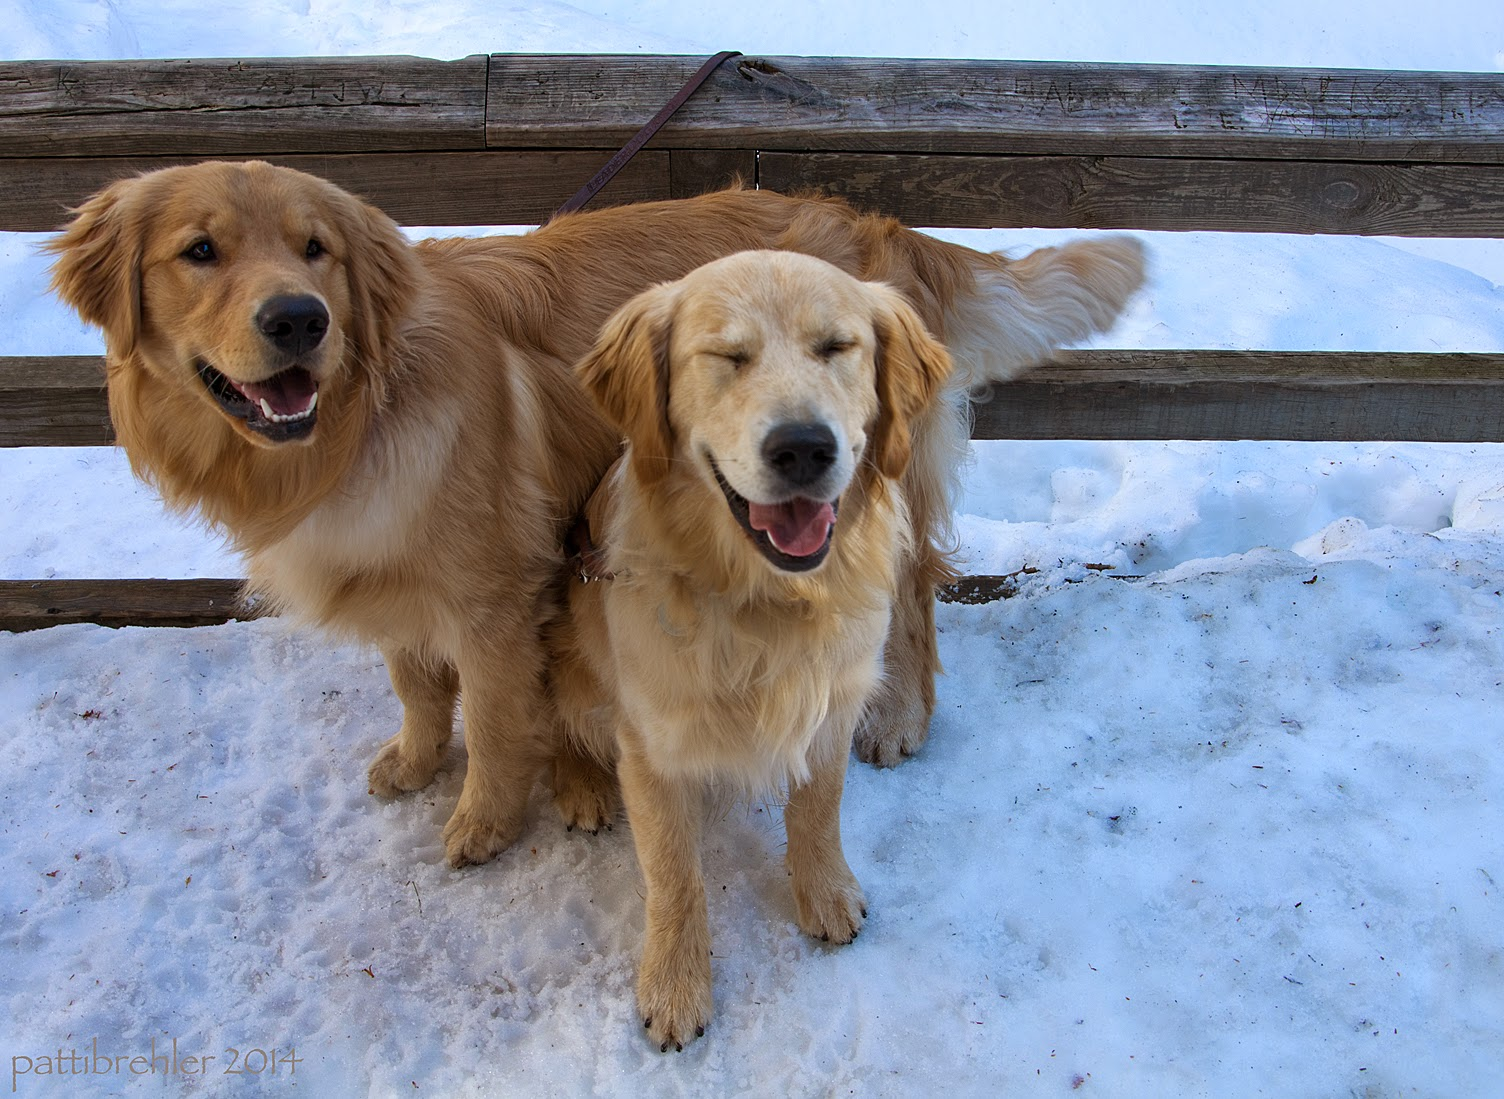 A cloer shot of the two goldens, who are now close together. One of them is sitting underneath the other one that is standing. The sitting golden has his eyes closed and looks like he is smiling. The dog that is standing is also smiling and is looking to the right. They are in front of the wooden fence, and all the rest is snow.